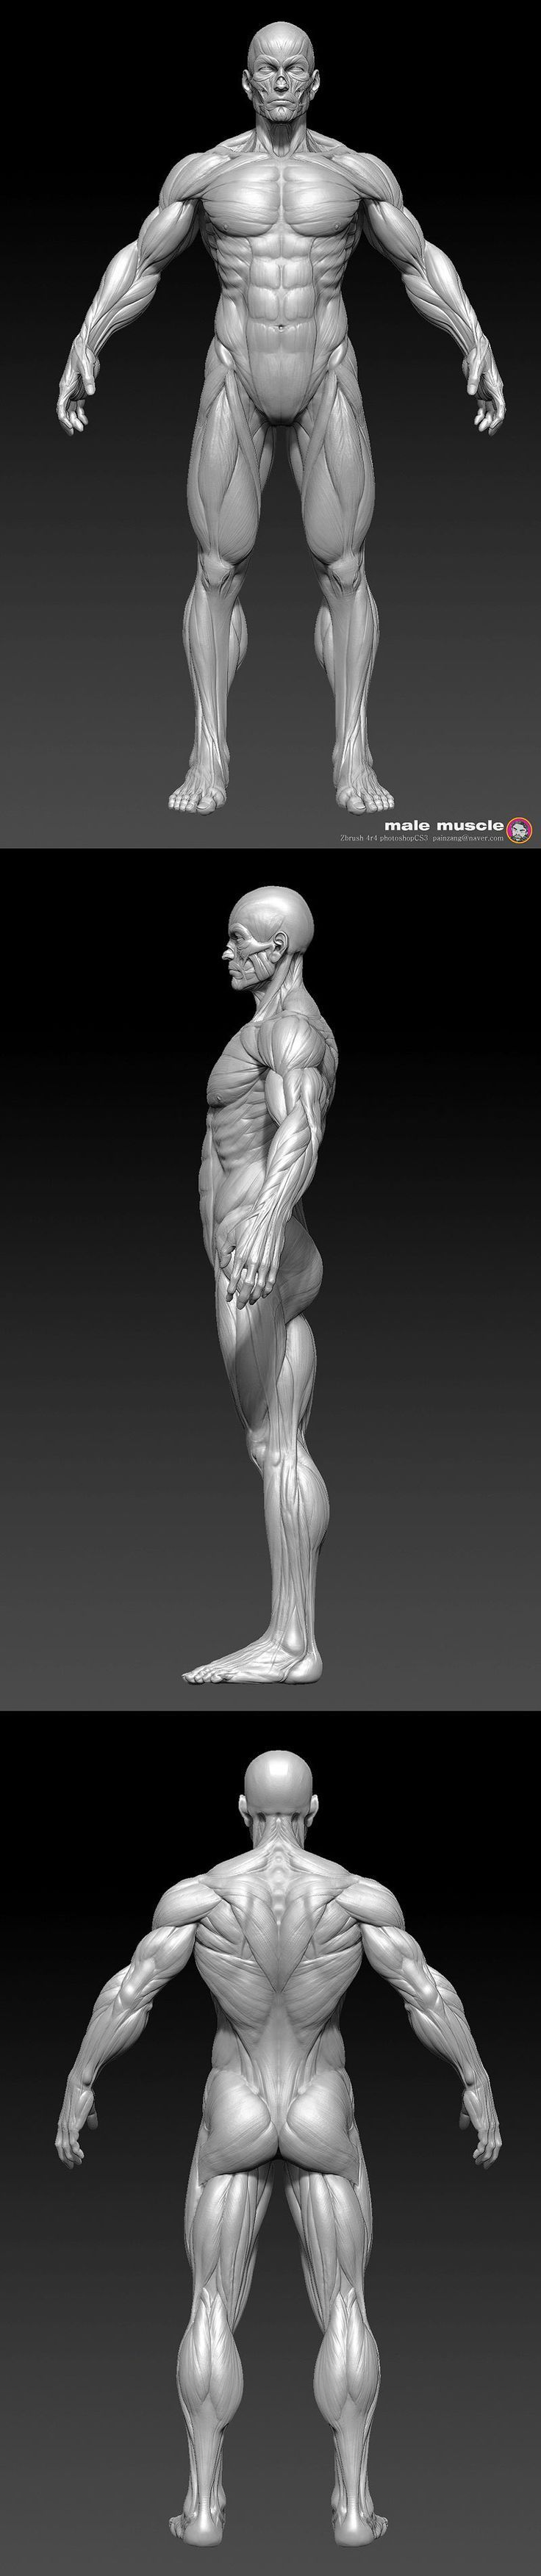 Human Anatomy 3D Sculpting Videos in Zbrush by Painzang Painzang is ...